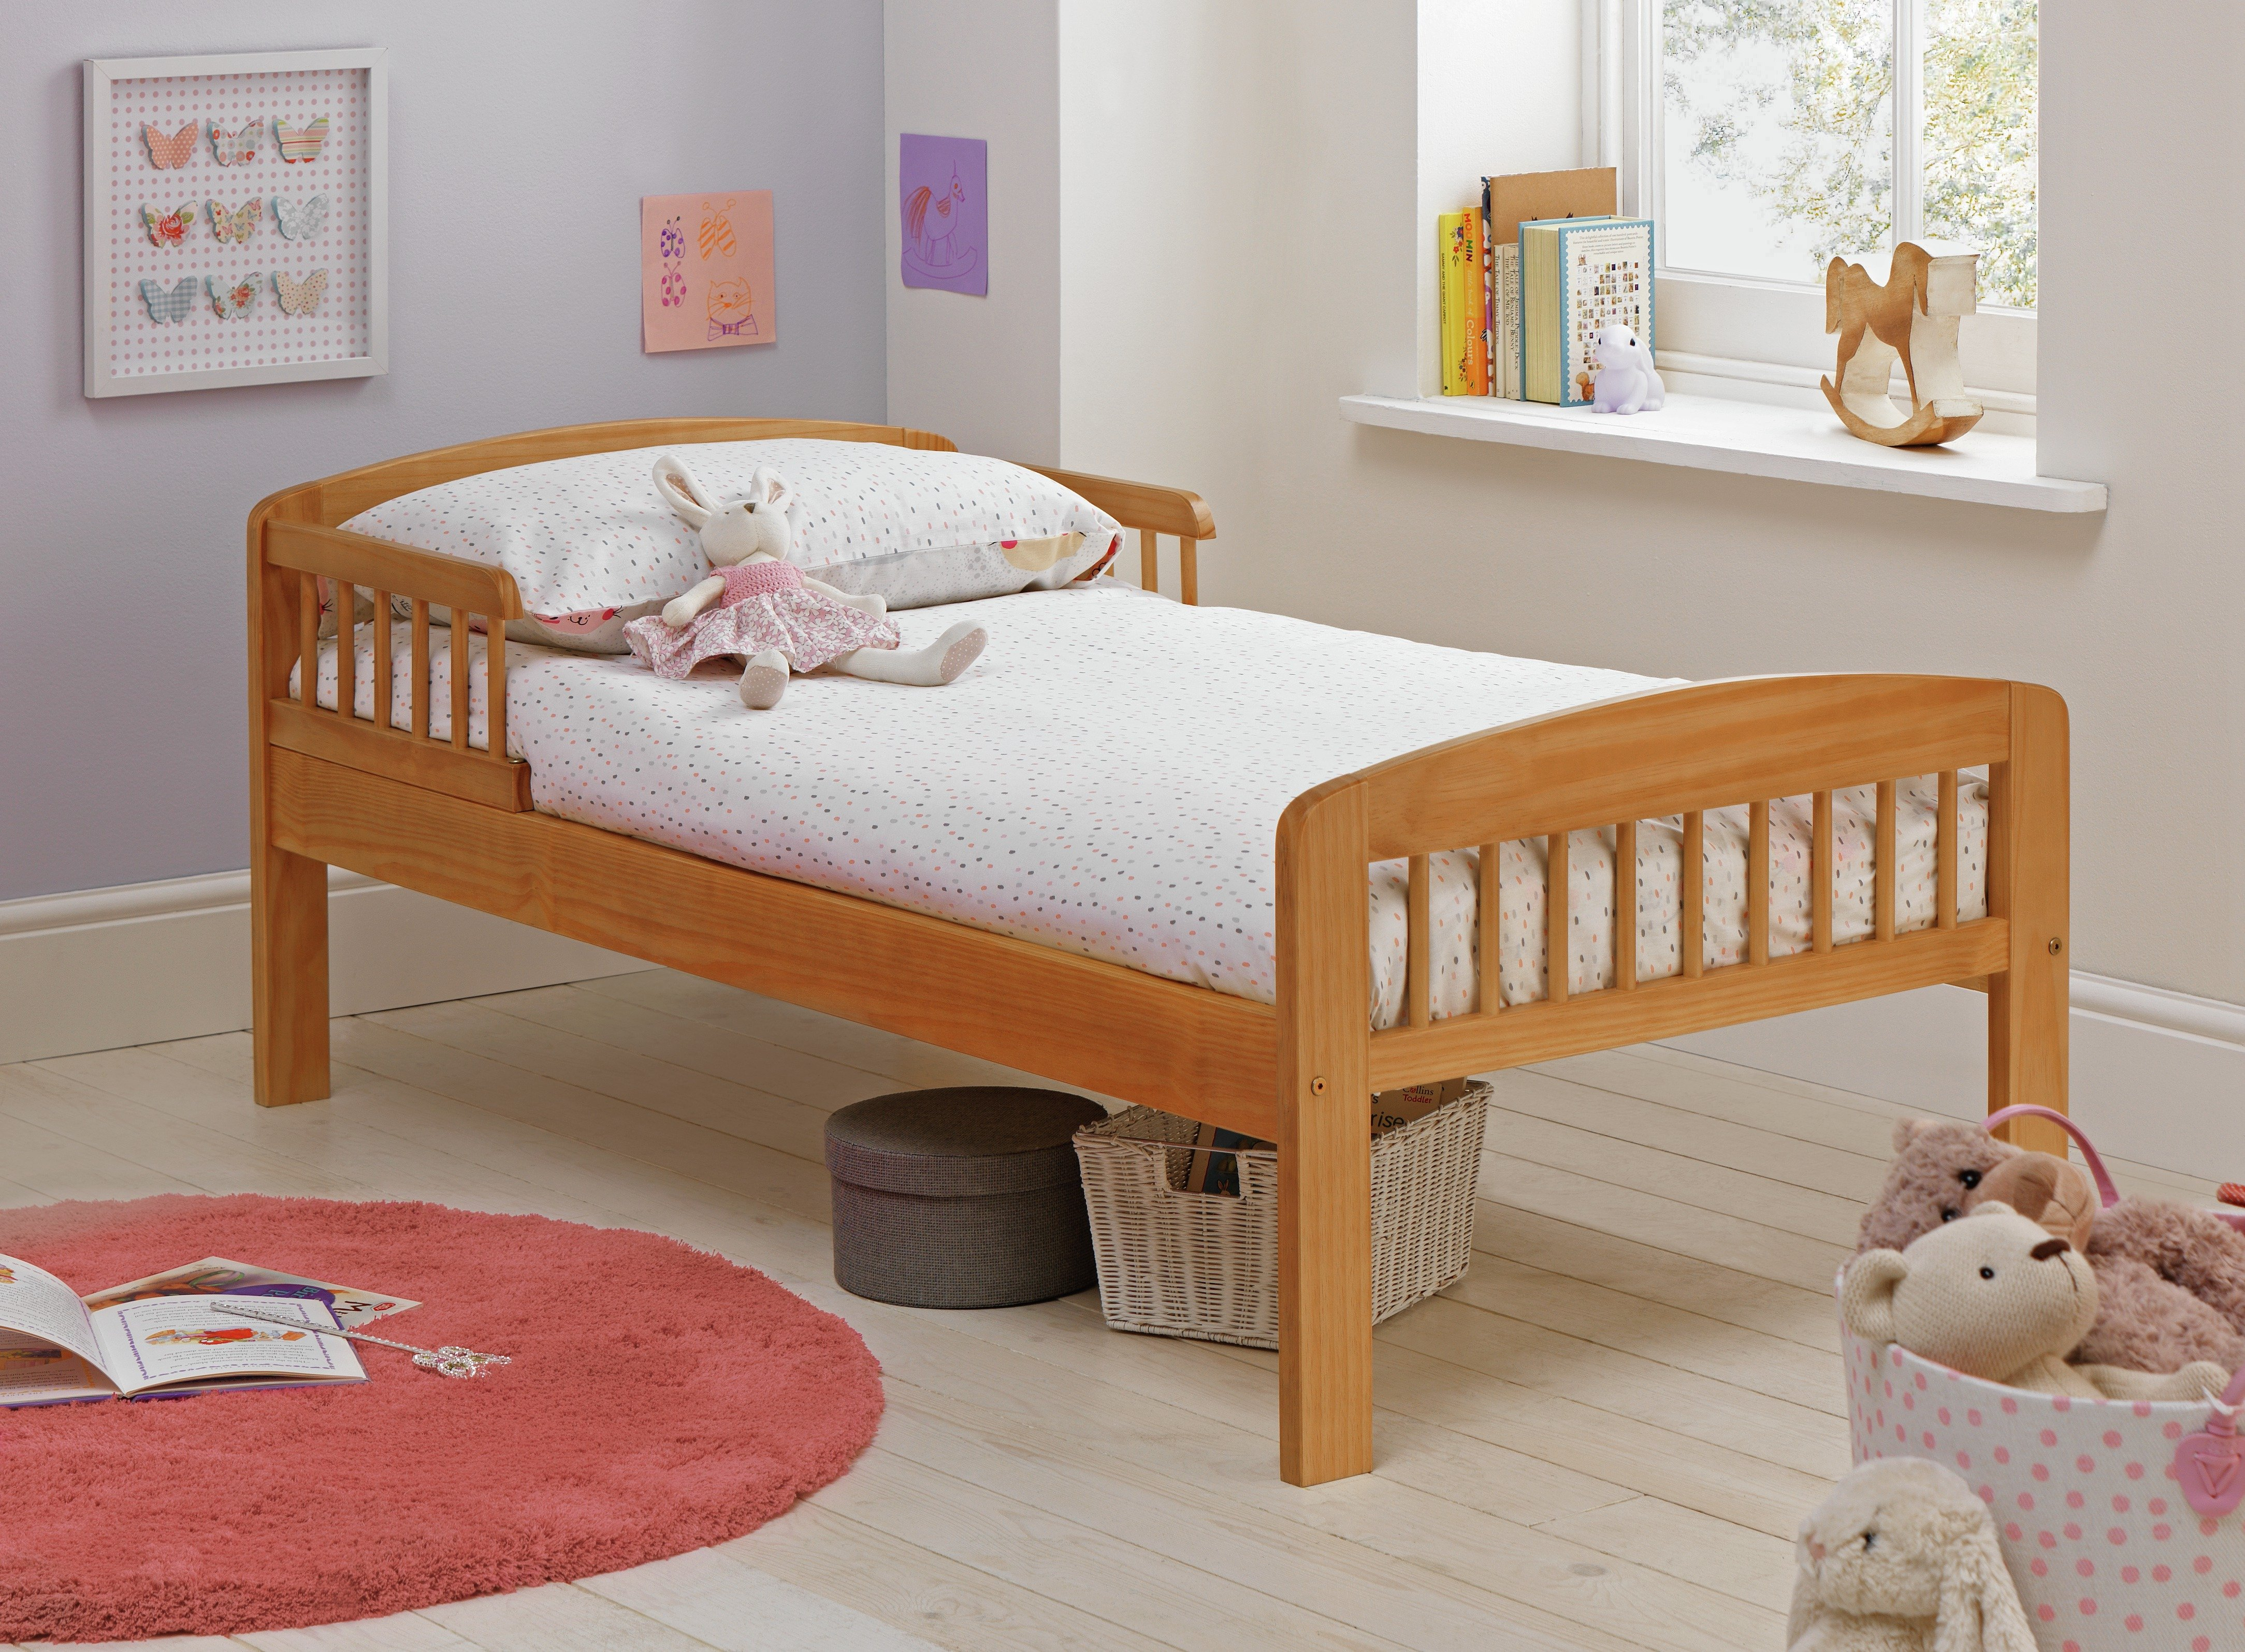 Argos Home Jesse Pine Toddler Bed Frame review